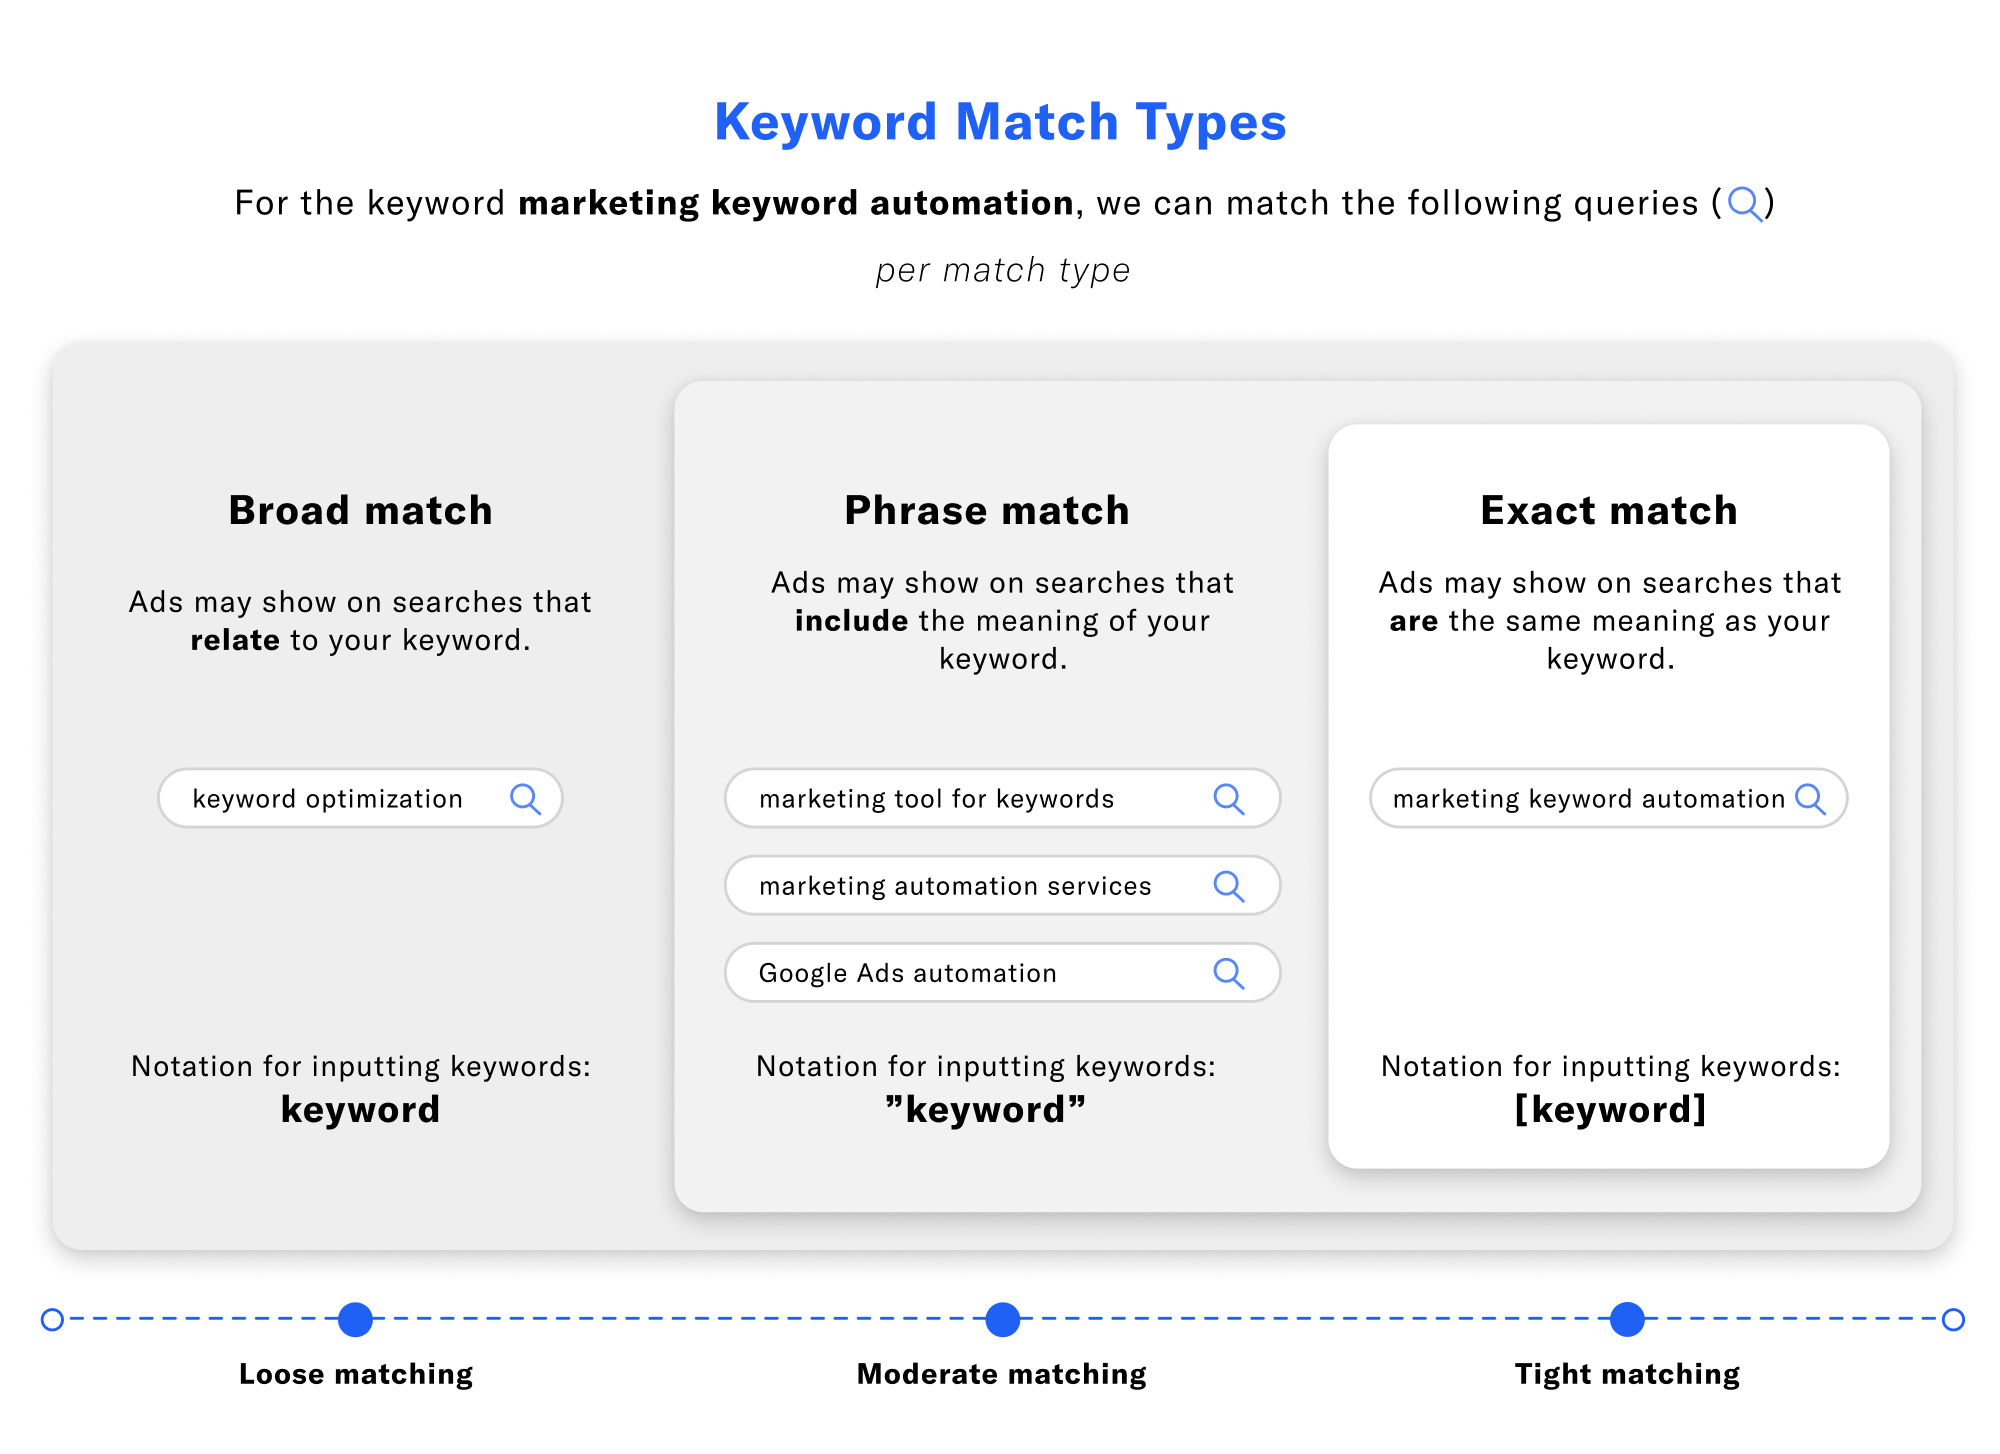 Differences between keyword match types